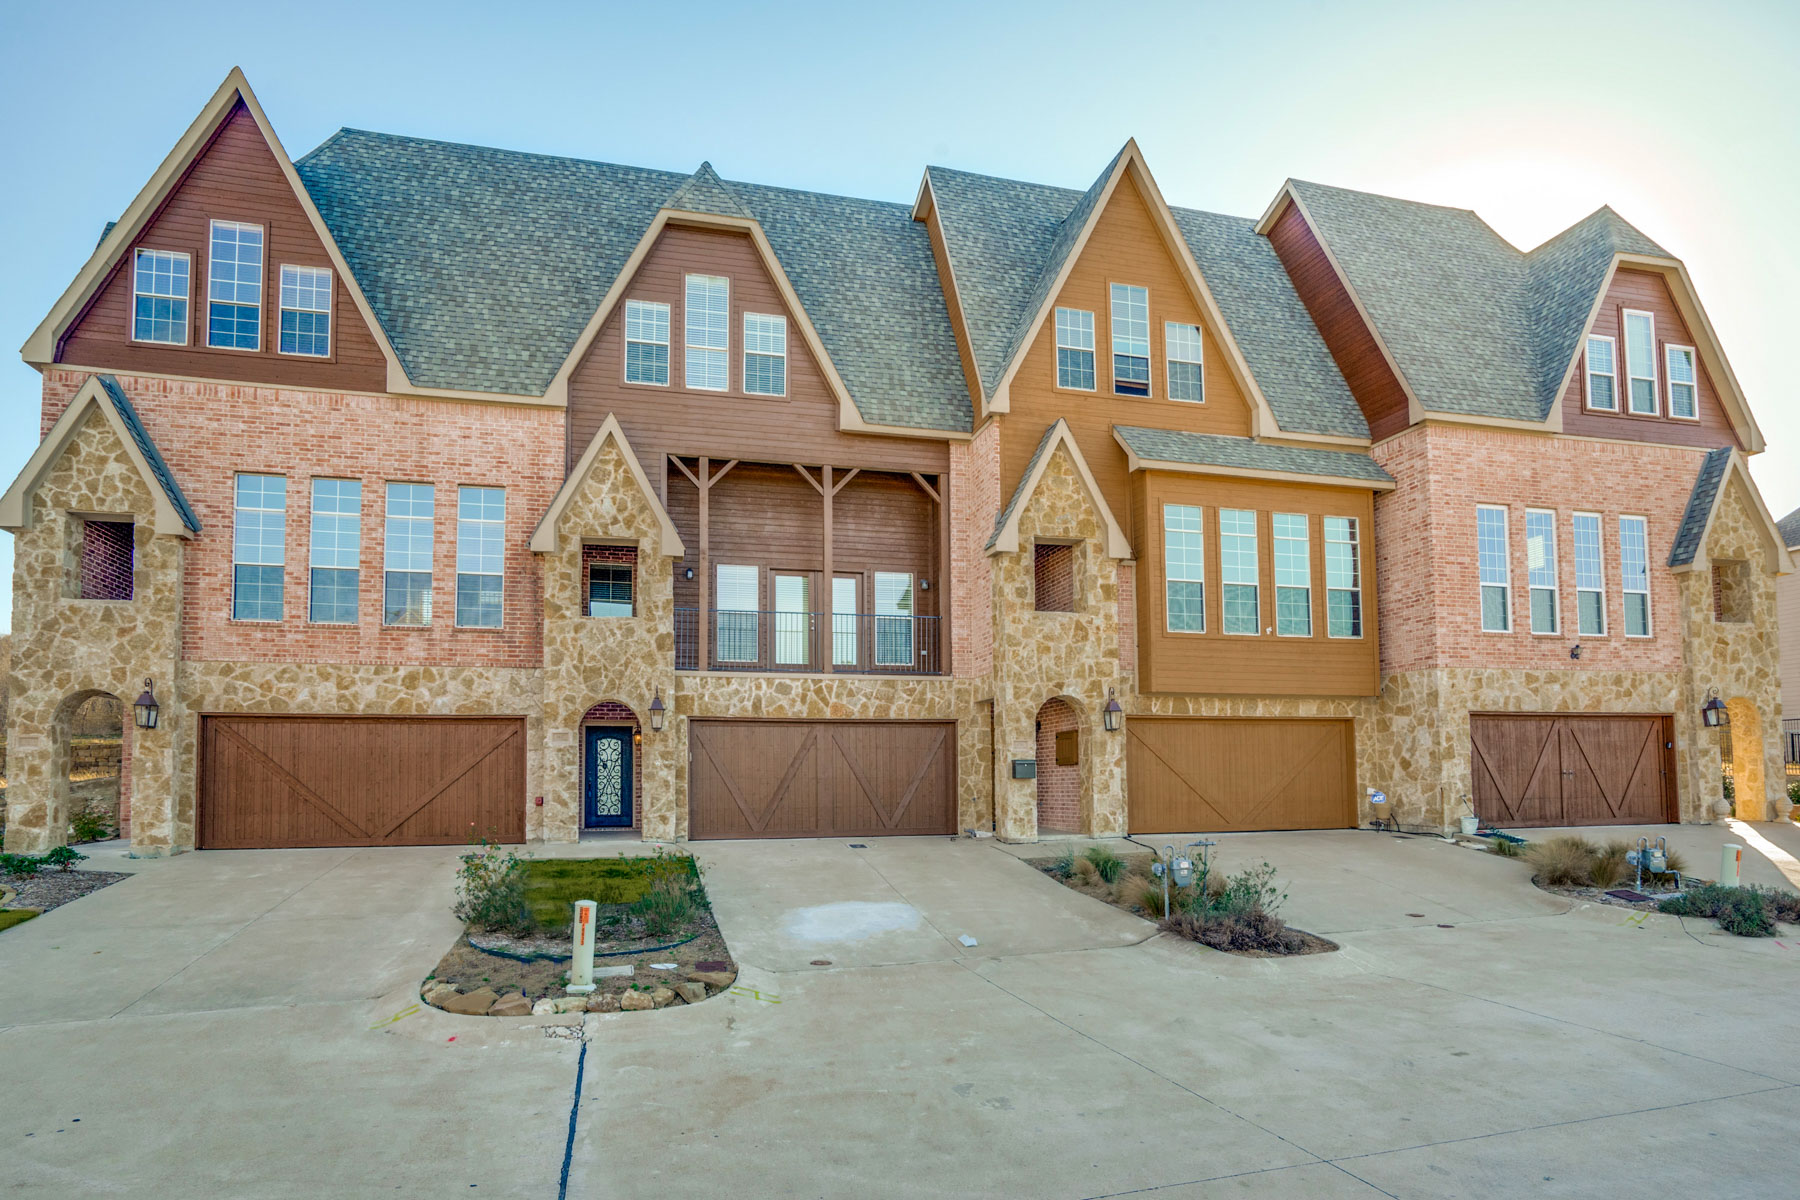 타운하우스 용 매매 에 Luxury 3-Story Townhome in Bellaire Village 6637 Lost Star Lane Fort Worth, 텍사스, 76132 미국